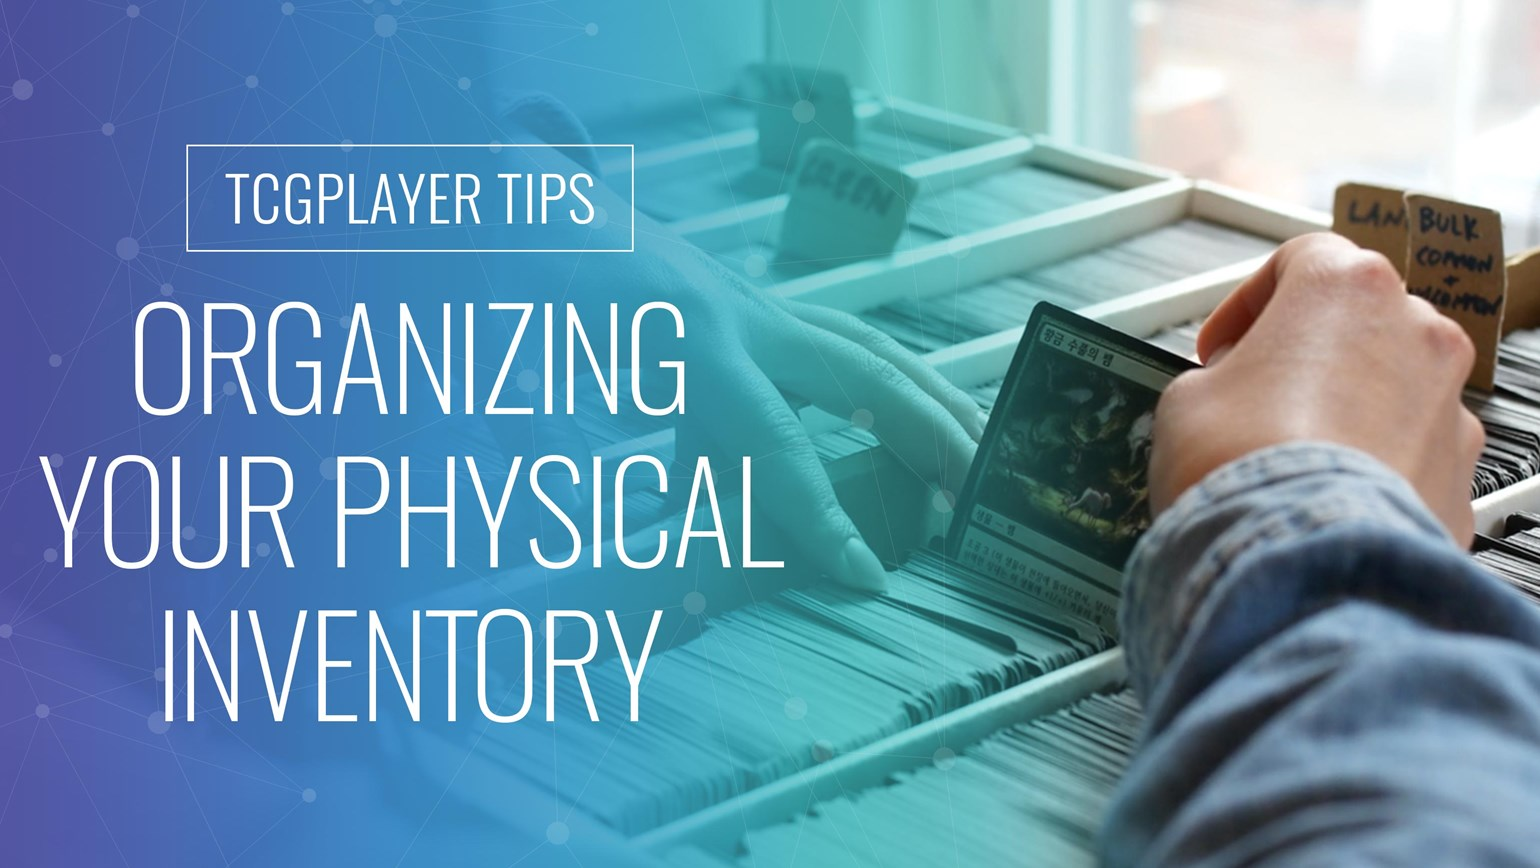 TCGplayer Tips: Organizing Your Physical Inventory